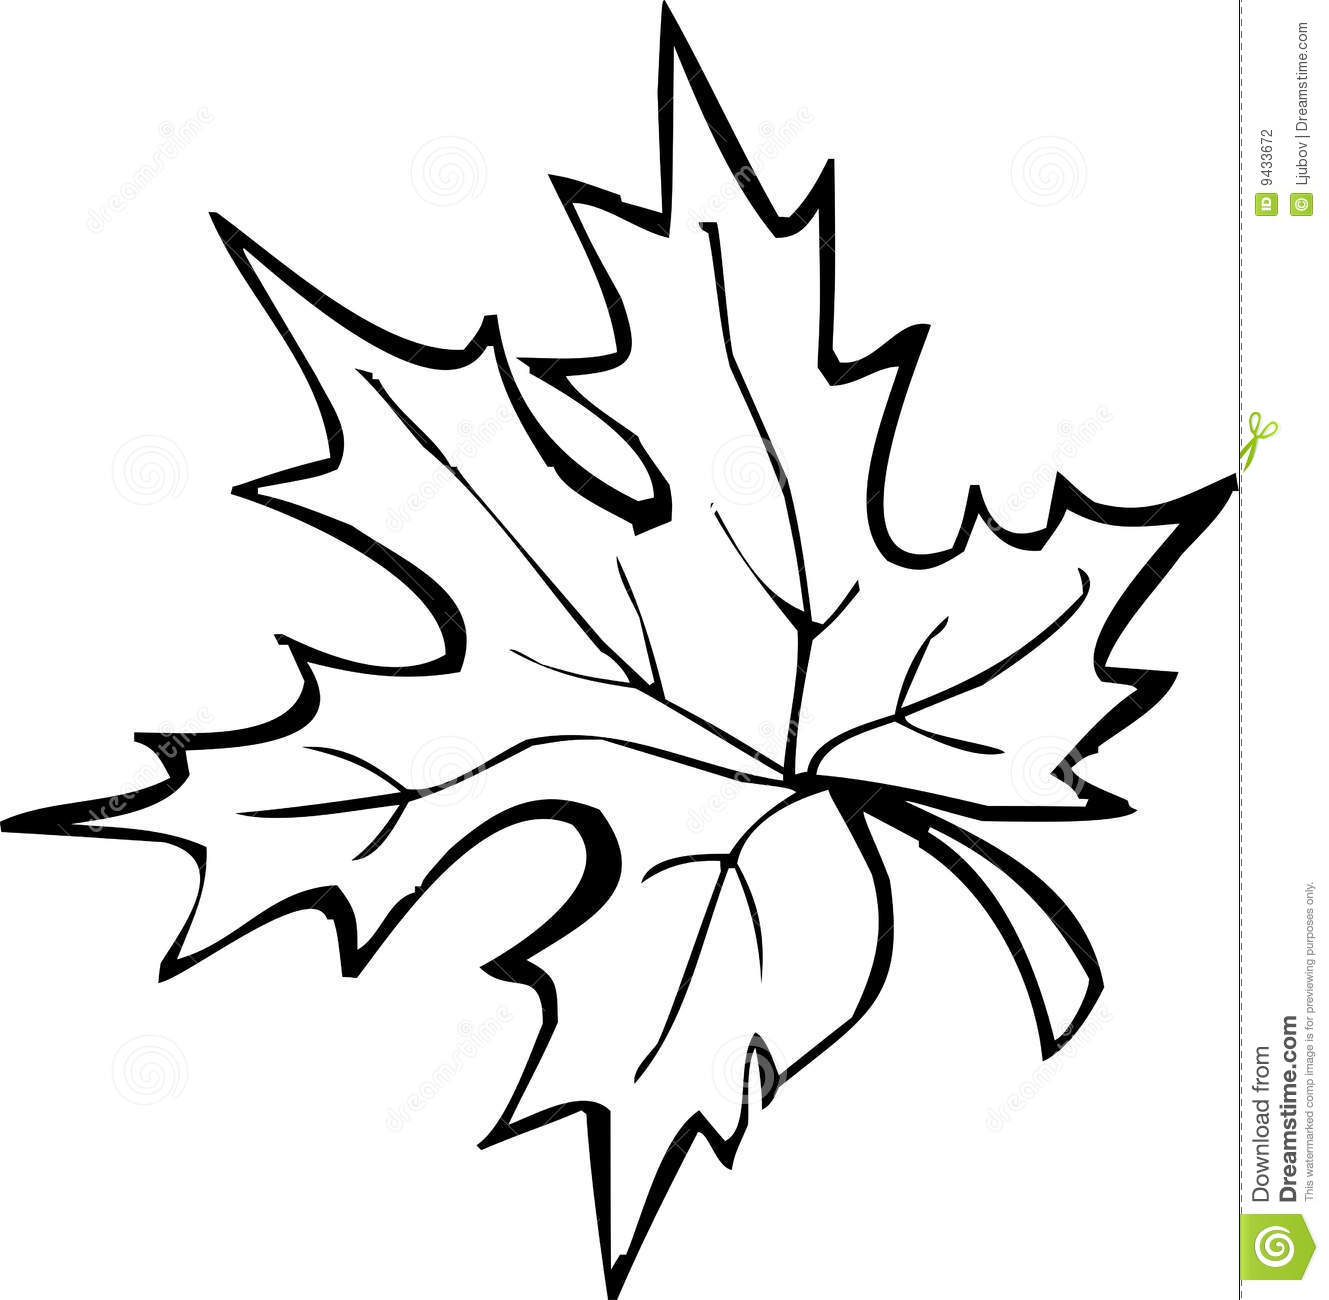 Leaf Clipart Black And White Free.